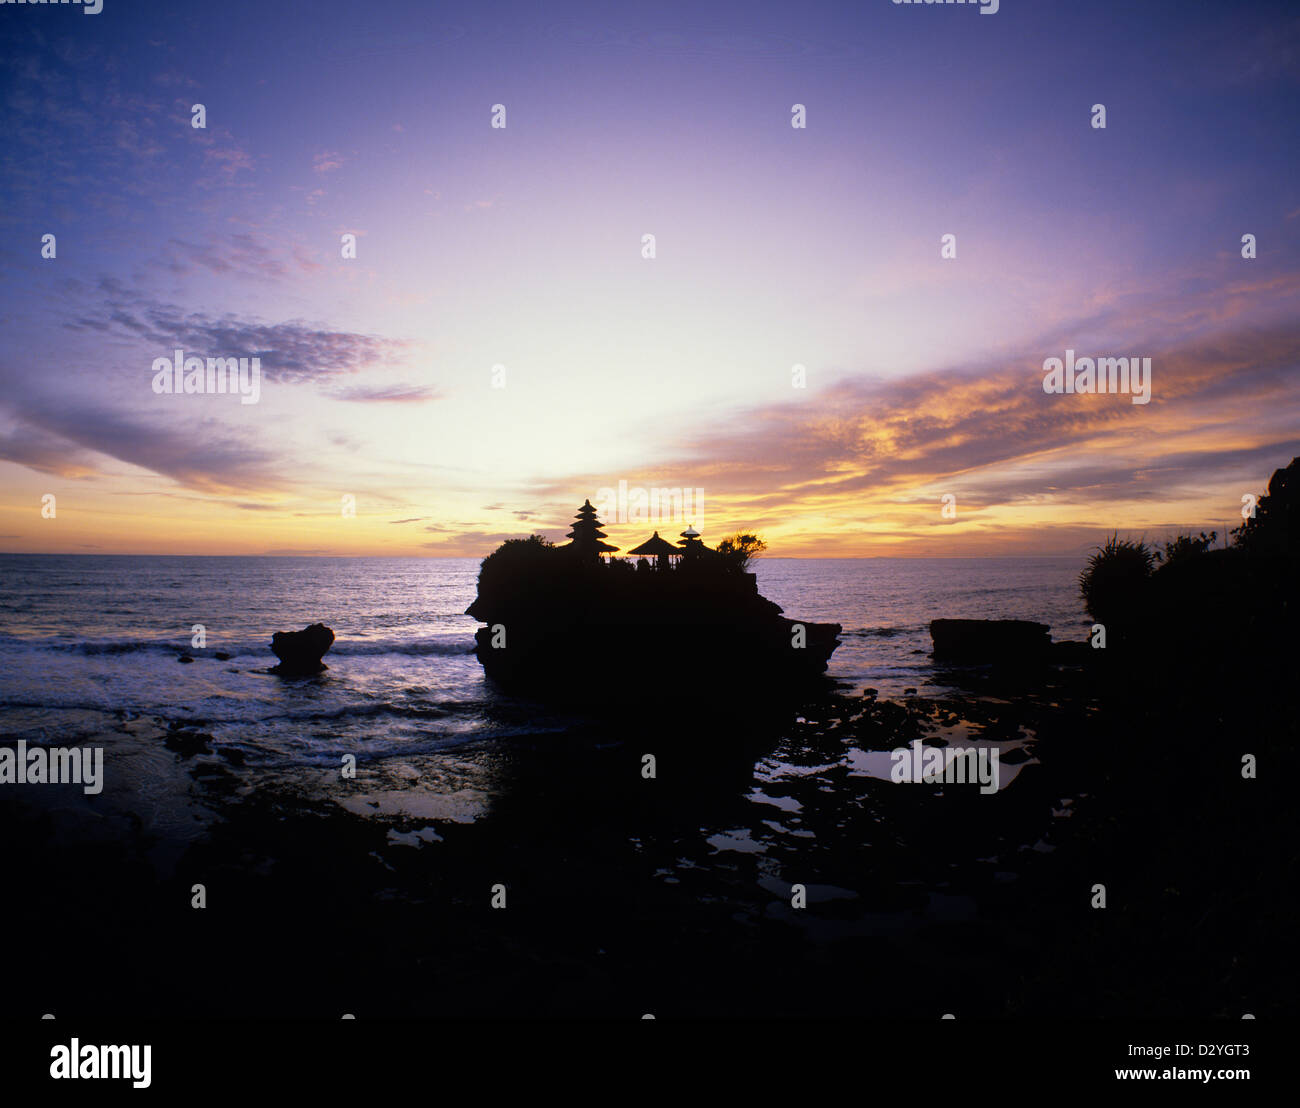 Indonesia, Bali, Tanah Lot; Temple in the Sea - Stock Image